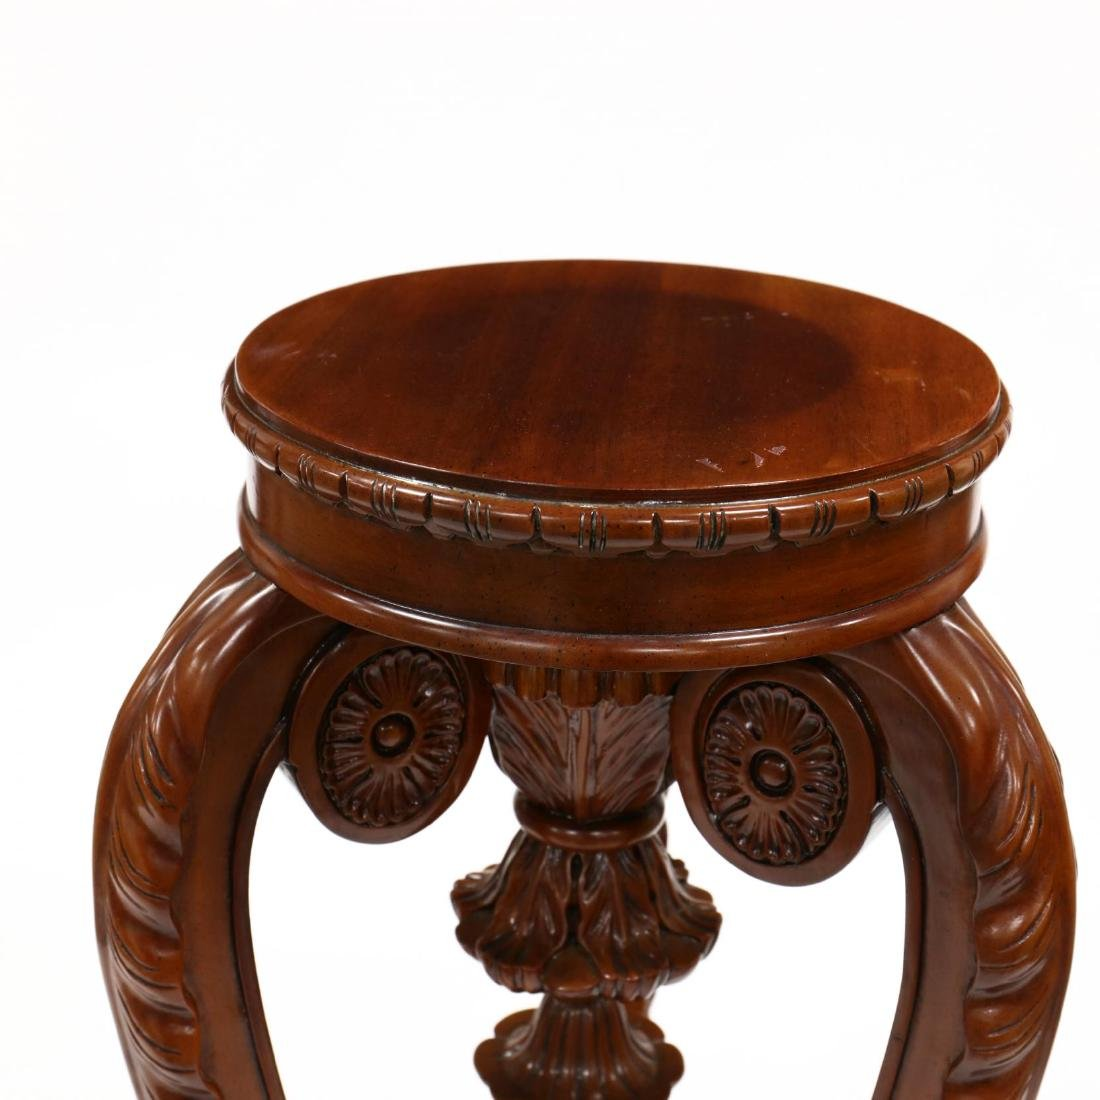 Pair of Neoclassical Style Pedestals - 2